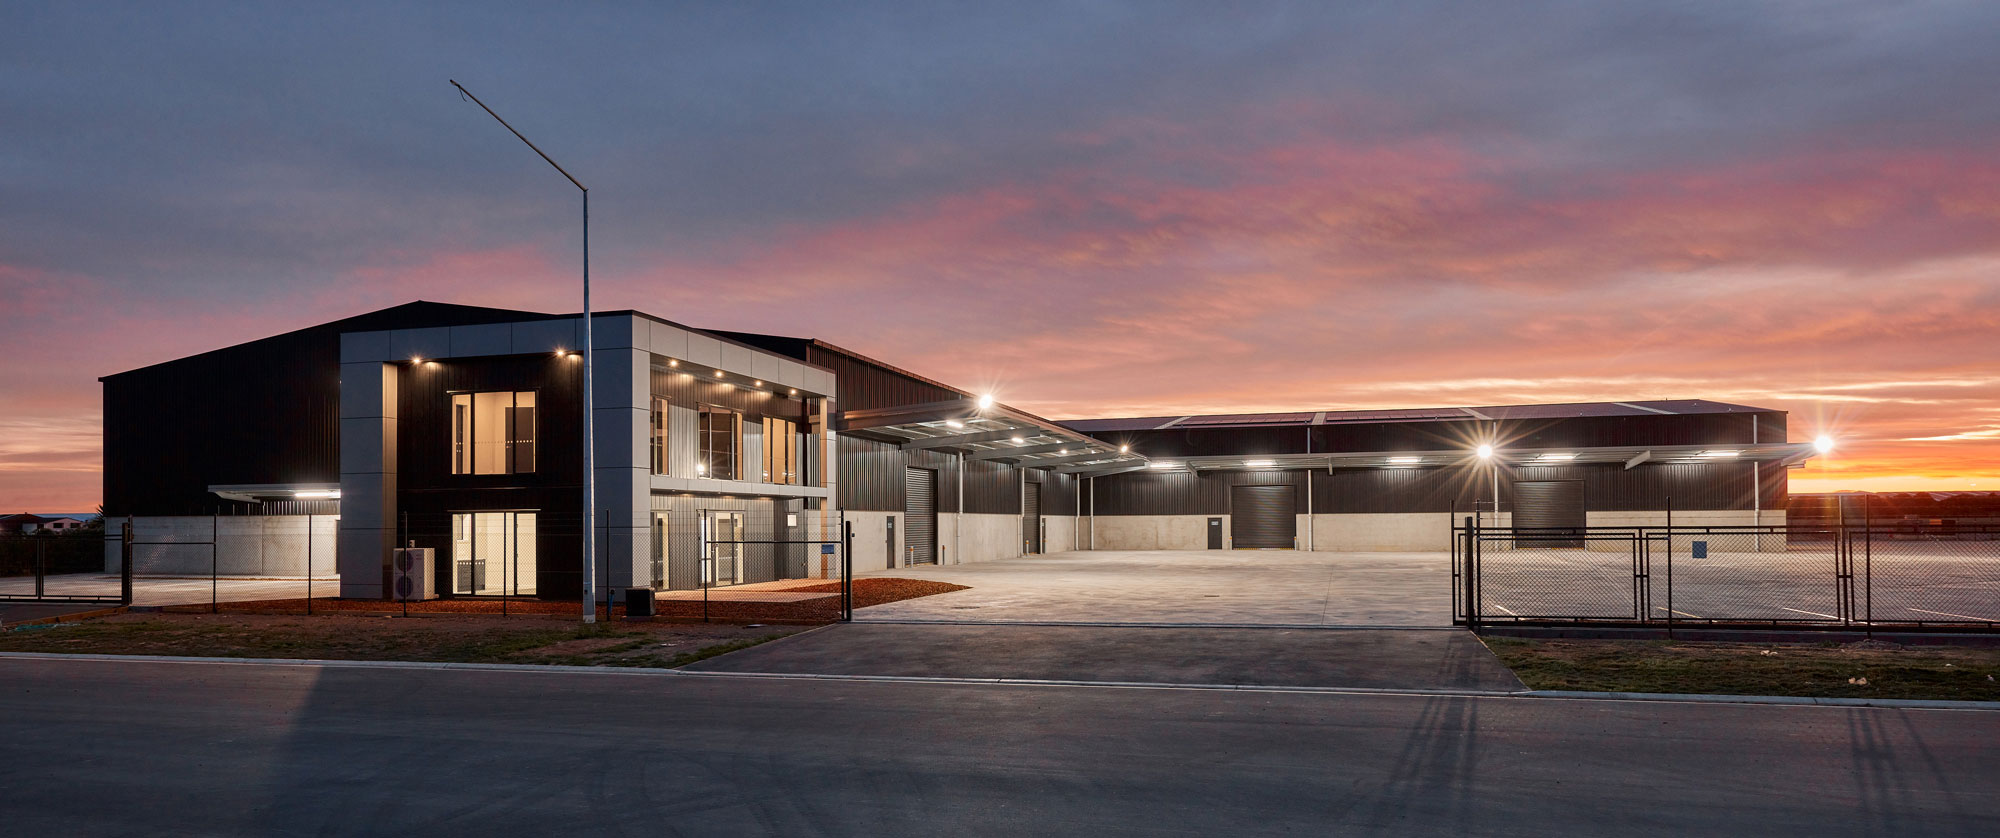 Commercial Building for Ngai Tahu - South Star